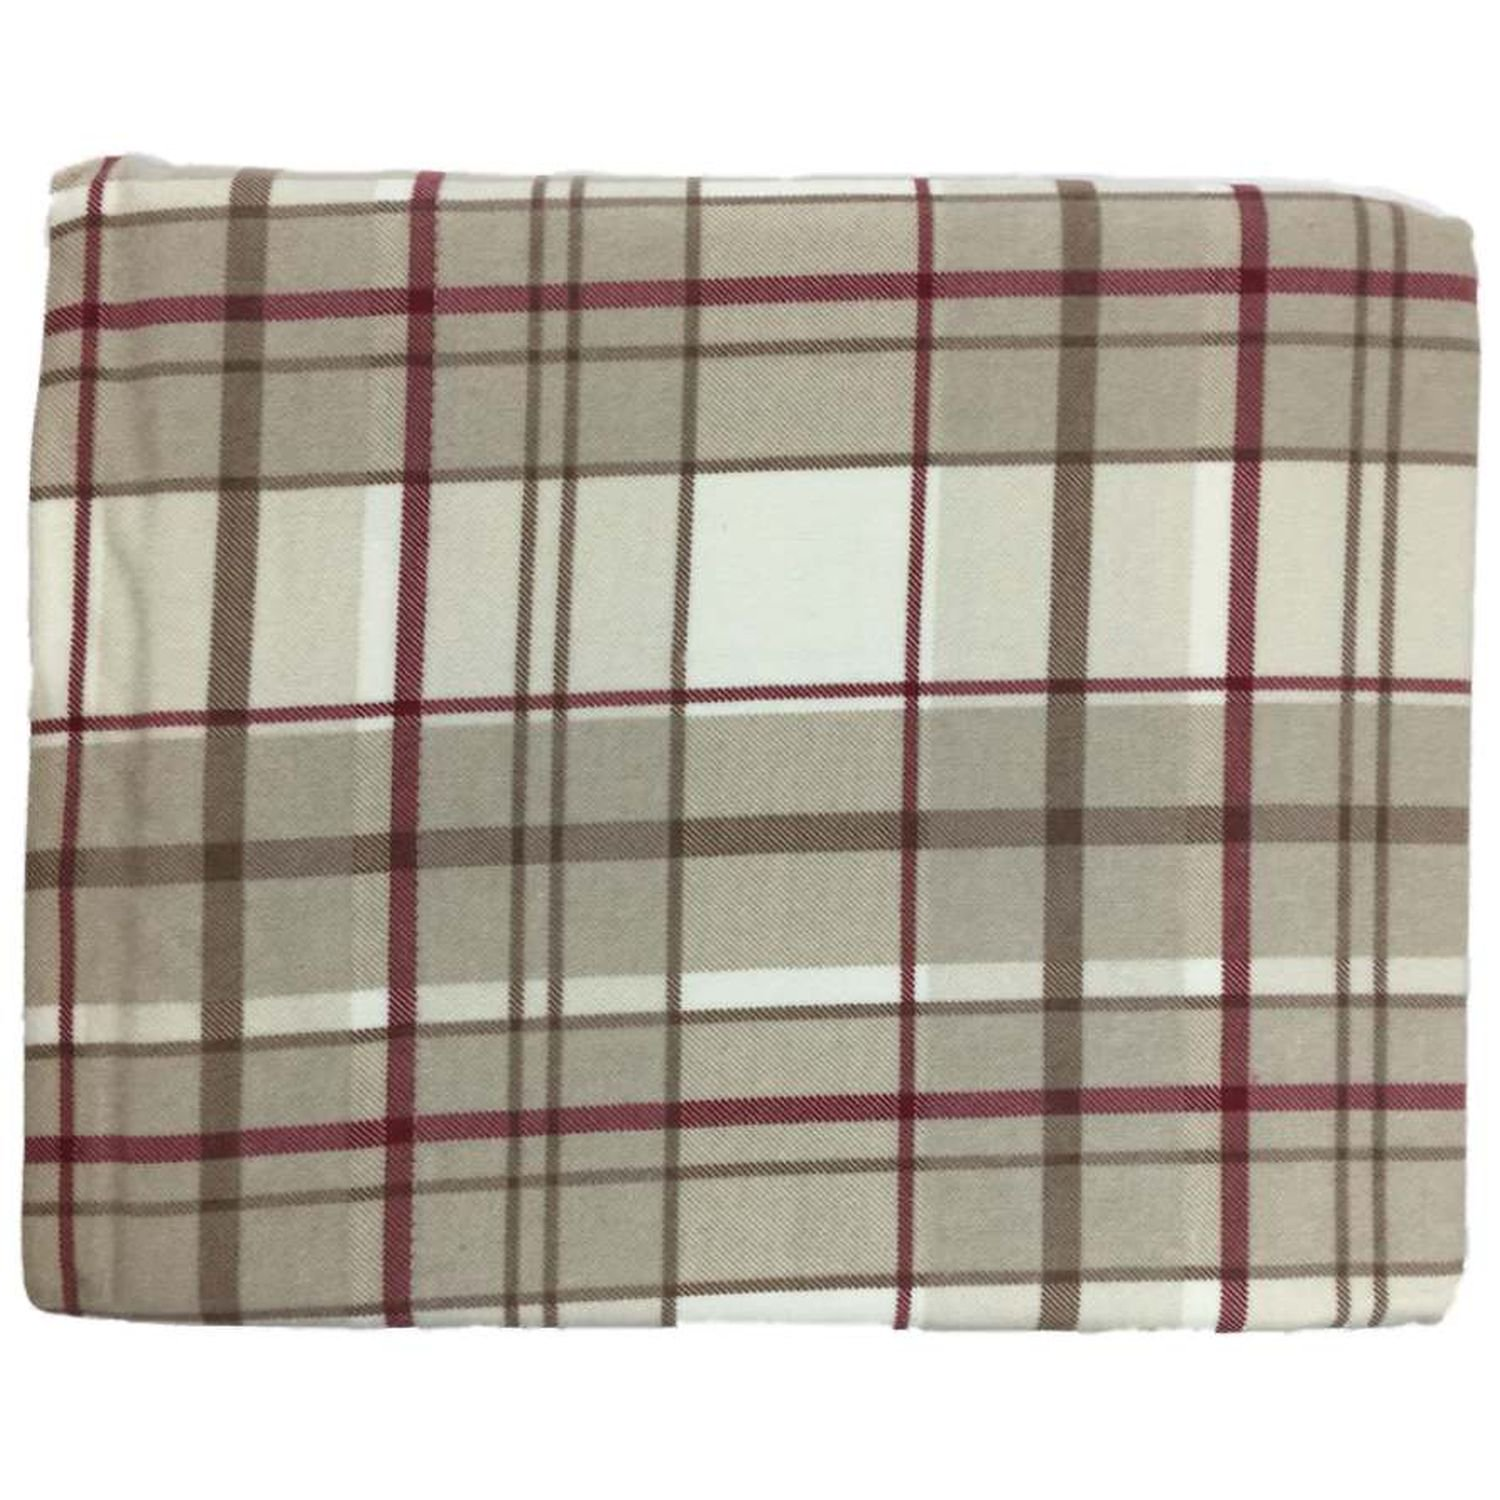 Cuddle Duds Flannel Sheet Set Red Khaki Plaid Full Bed Sheets Bedding Walmart Com Walmart Com